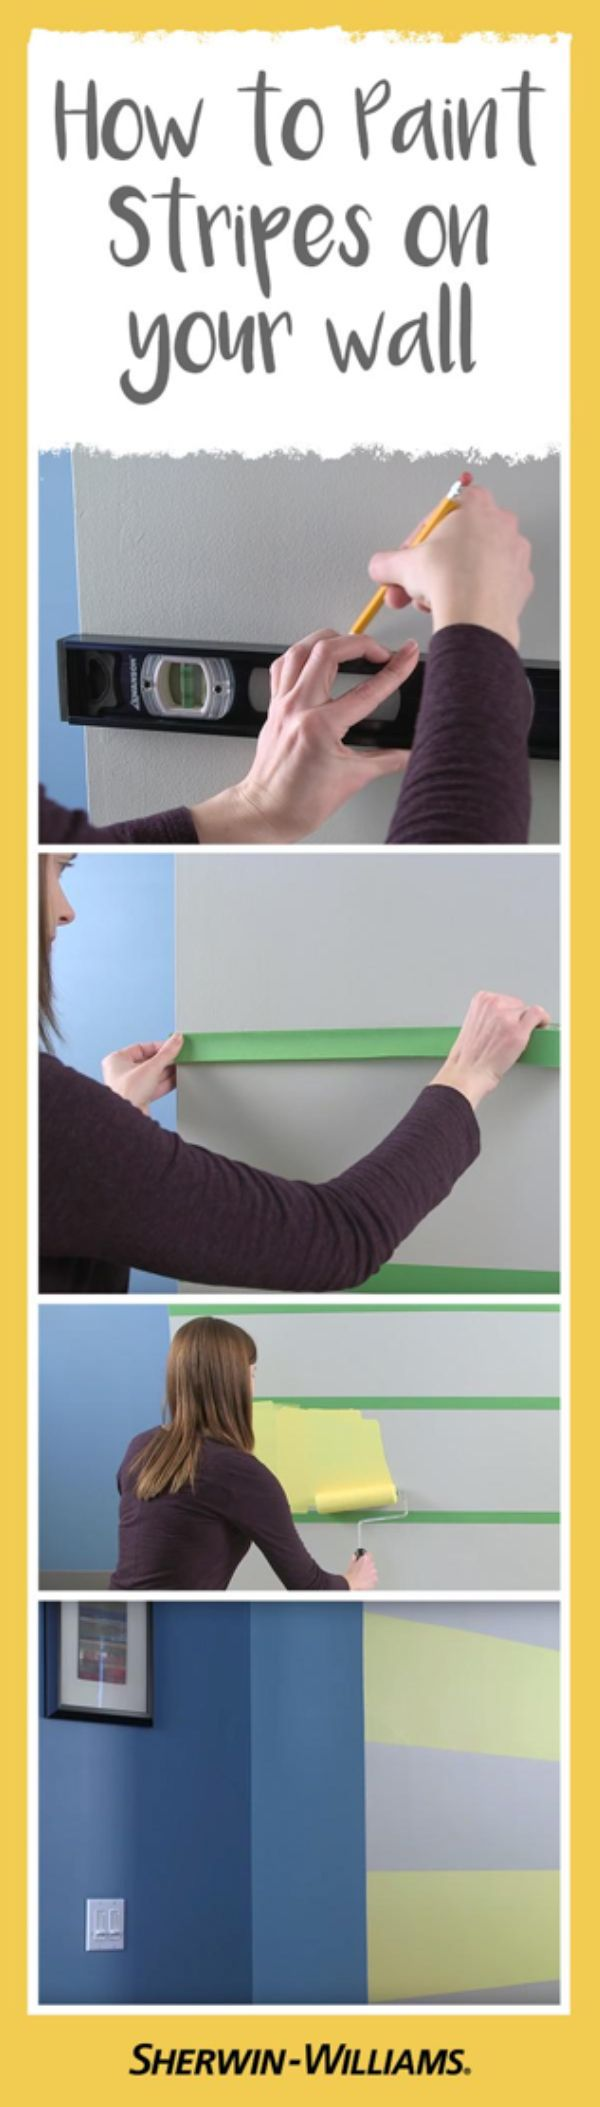 Ombre technique supplies and tips from sherwin williams - Painting Stripes On Your Wall Has Never Been Easier Just Measure Tape And Paint